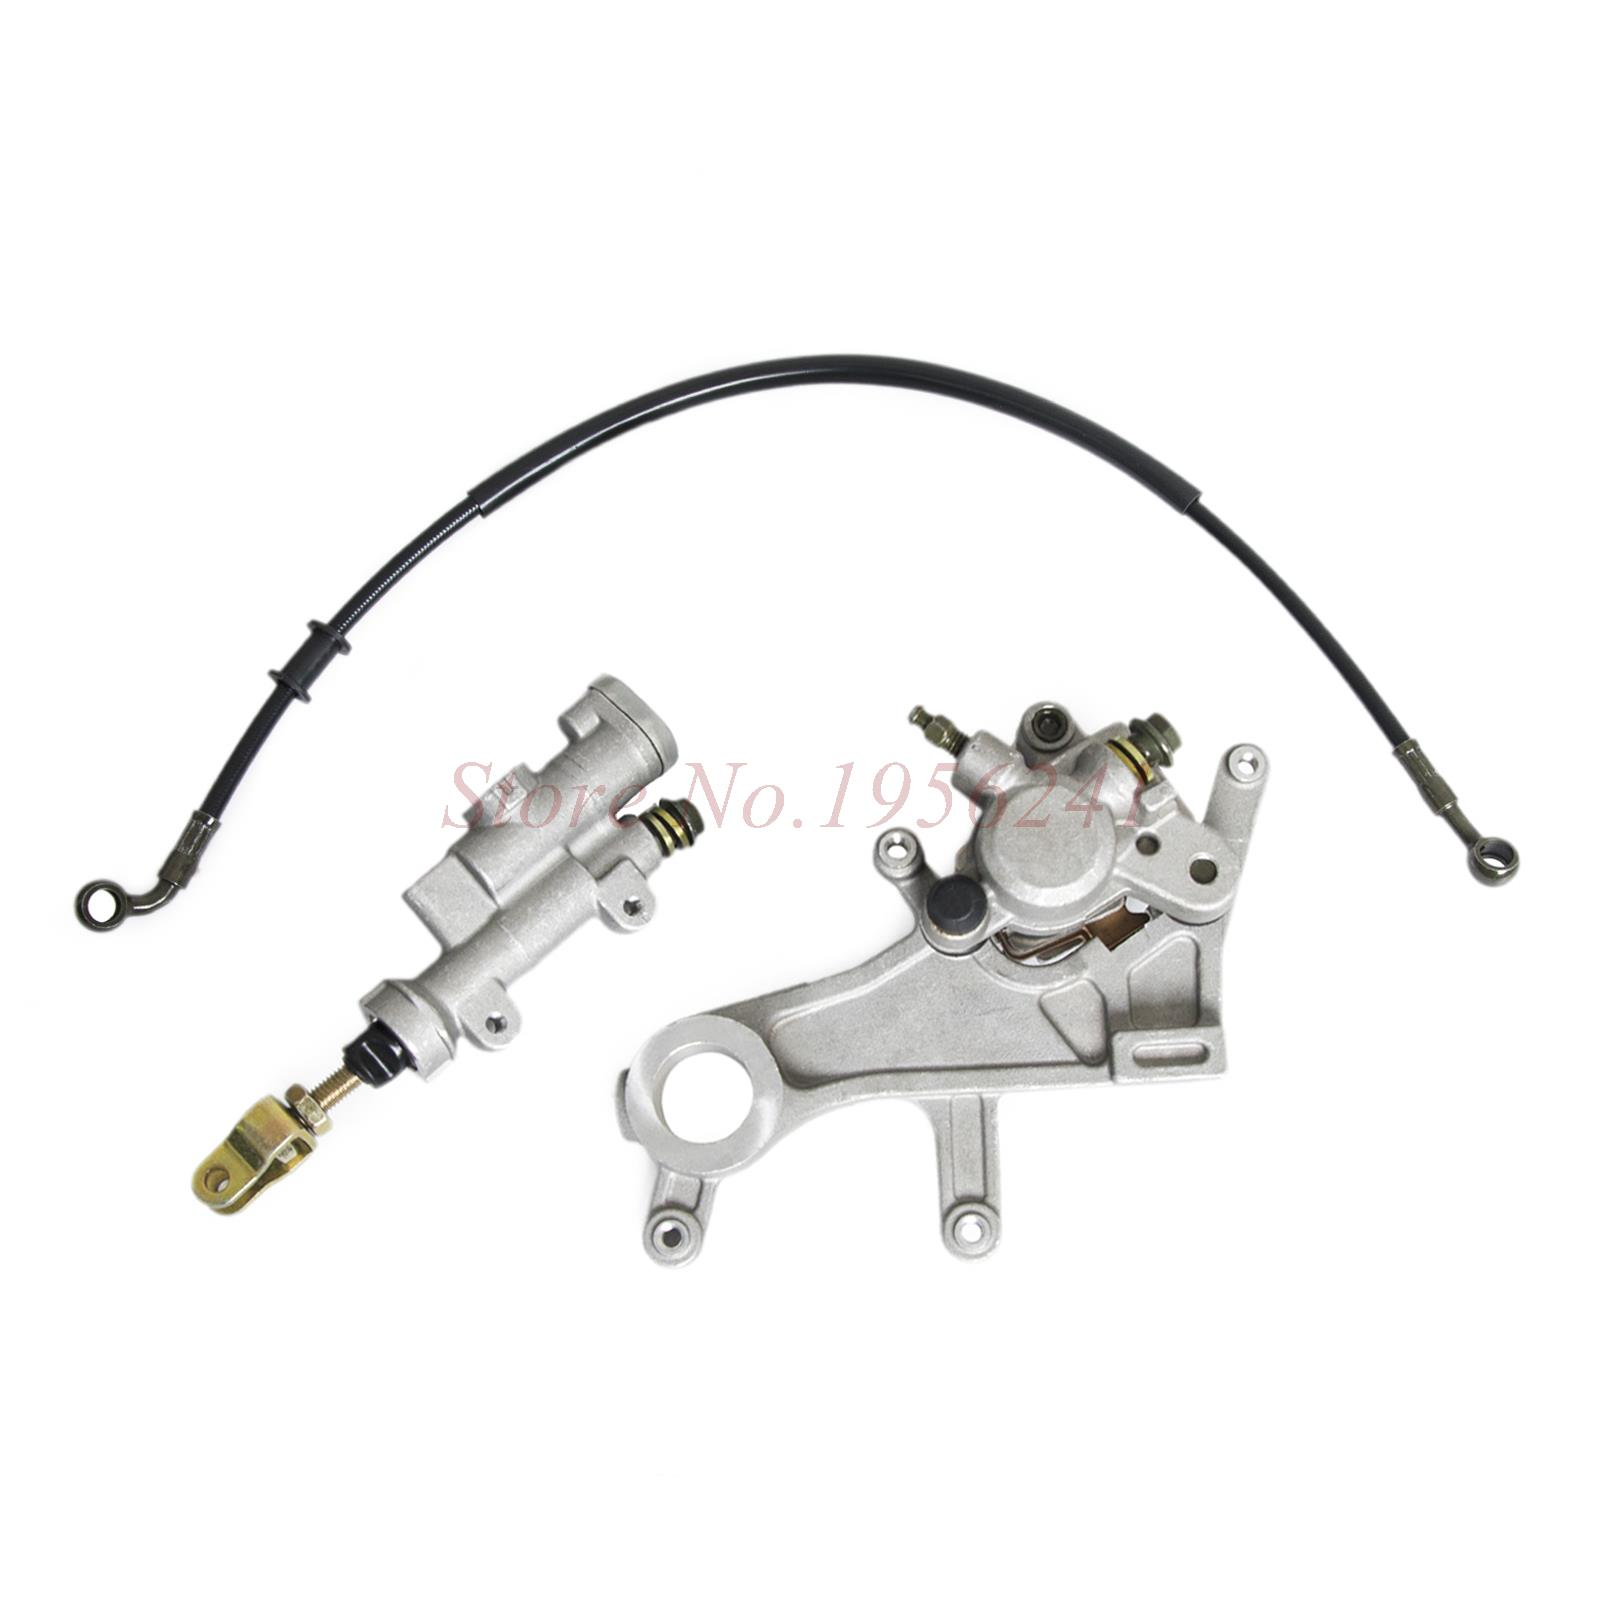 Rear Brake Caliper Master Cylinder & Brake Oil Hose Pipe & Pads For Honda CR125R CR250R CR 125R 250R 2002 - 2007 CR125 CR250 R стоимость